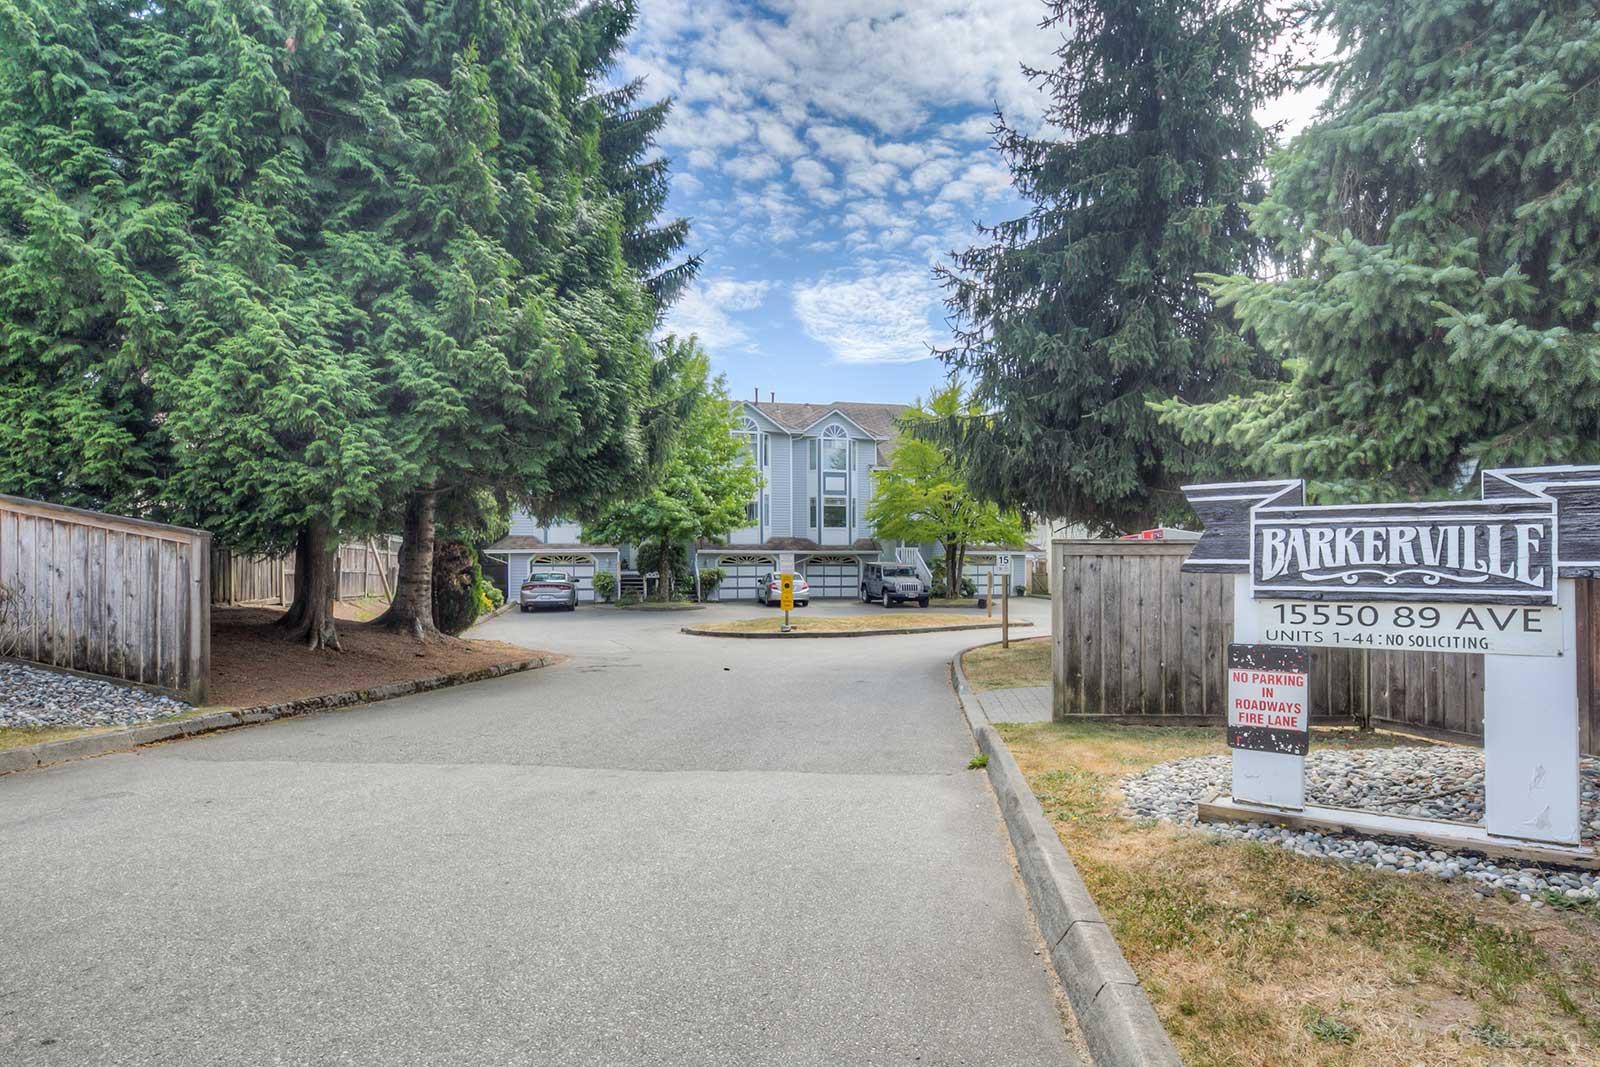 Barkerville at 15550 89 Ave, Surrey 1